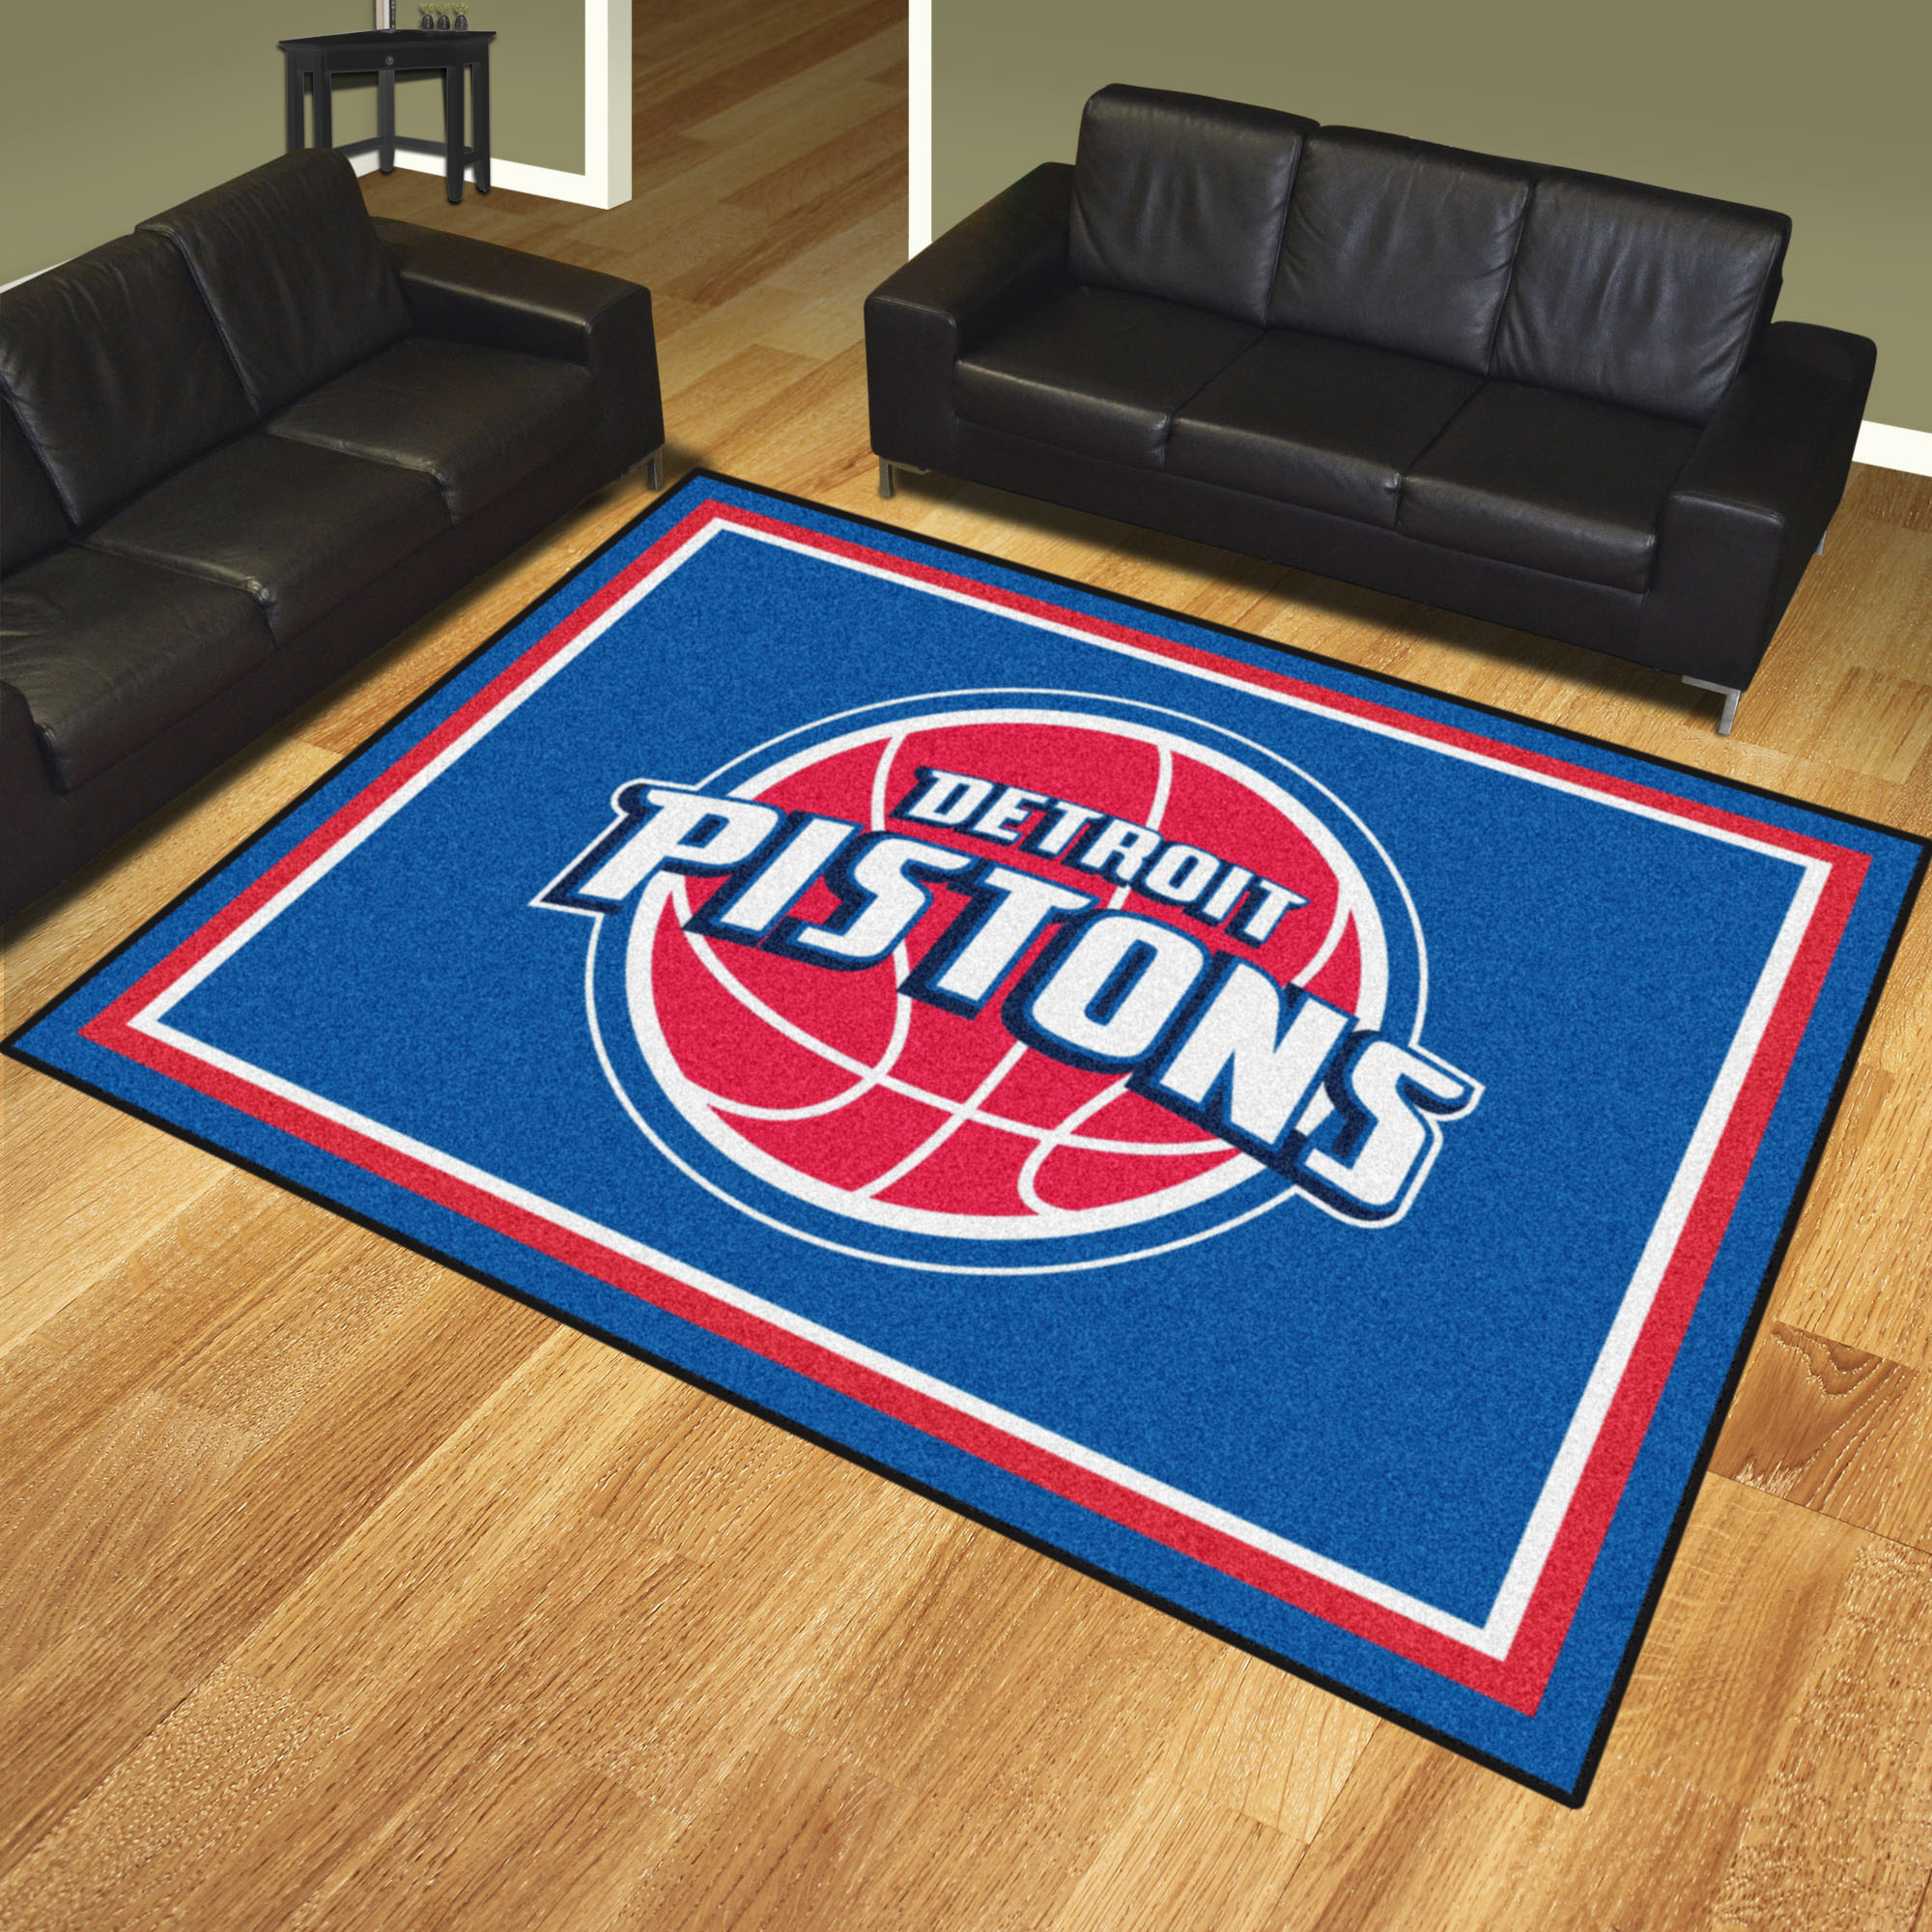 Detroit Pistons Ultra Plush 8x10 Area Rug